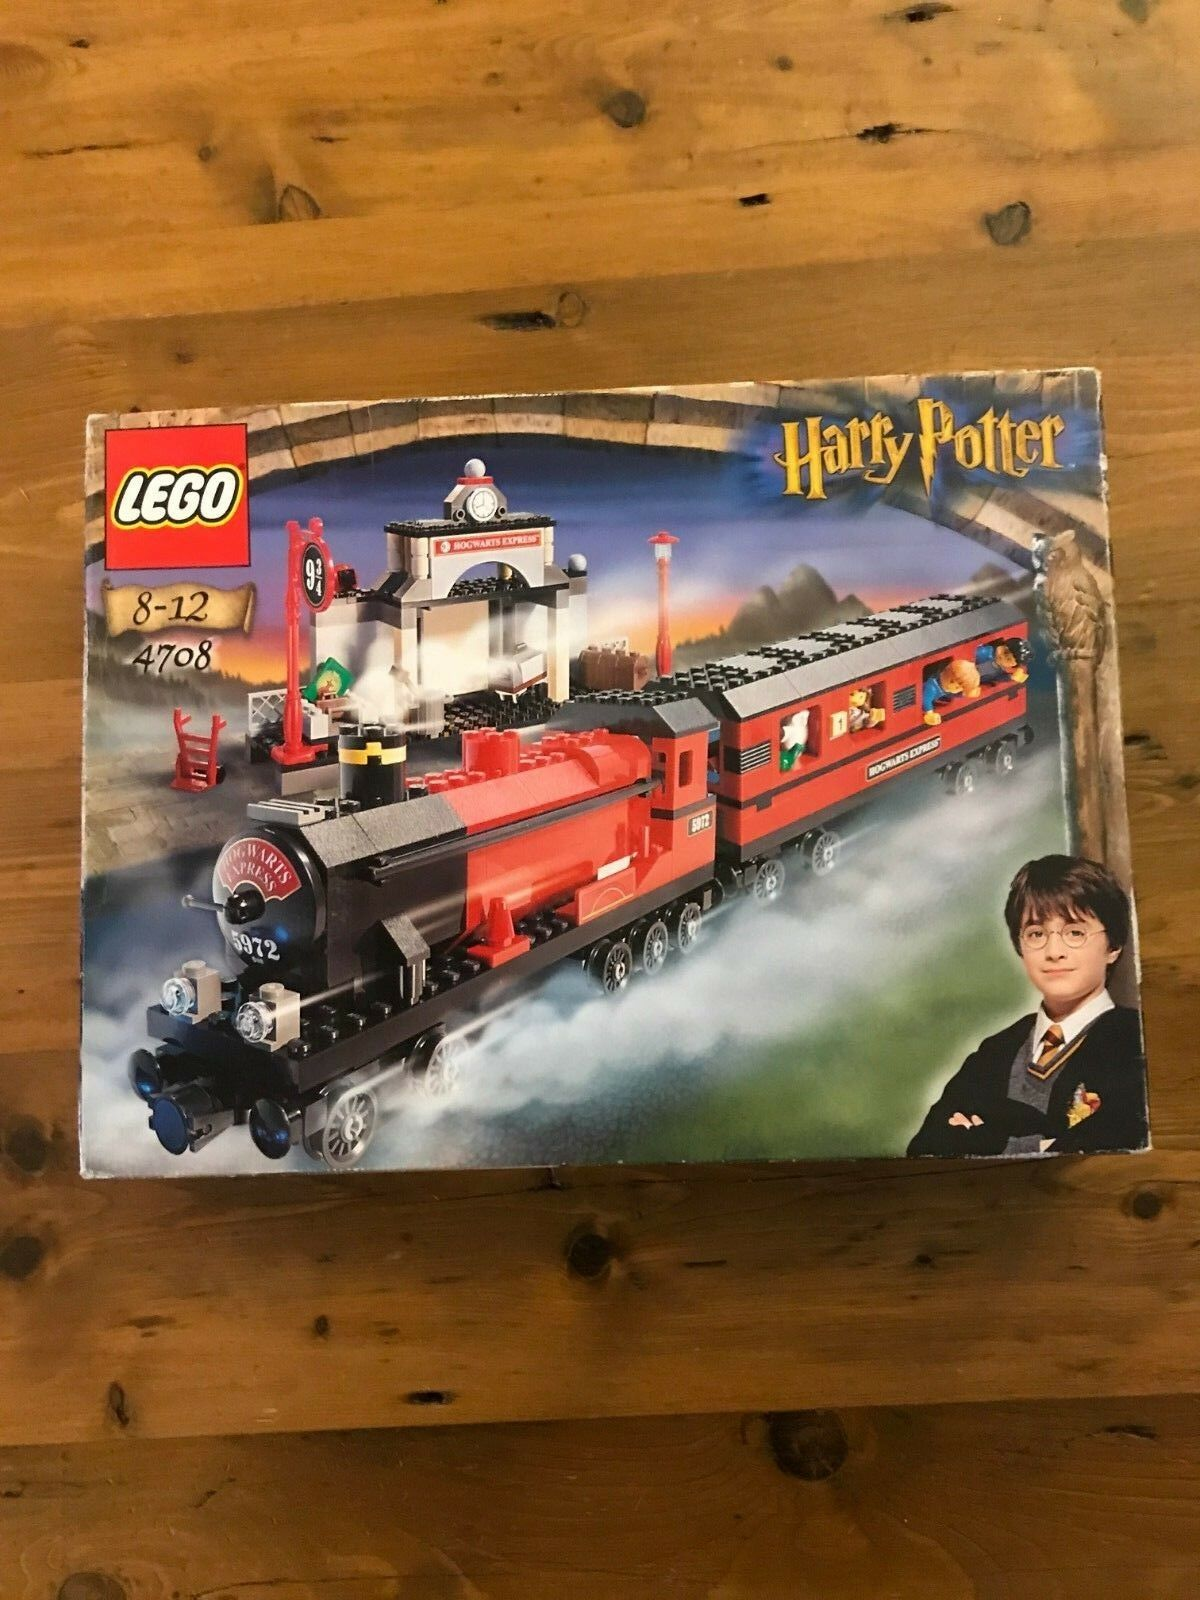 Lego 4708 harry potter train hogwarts express